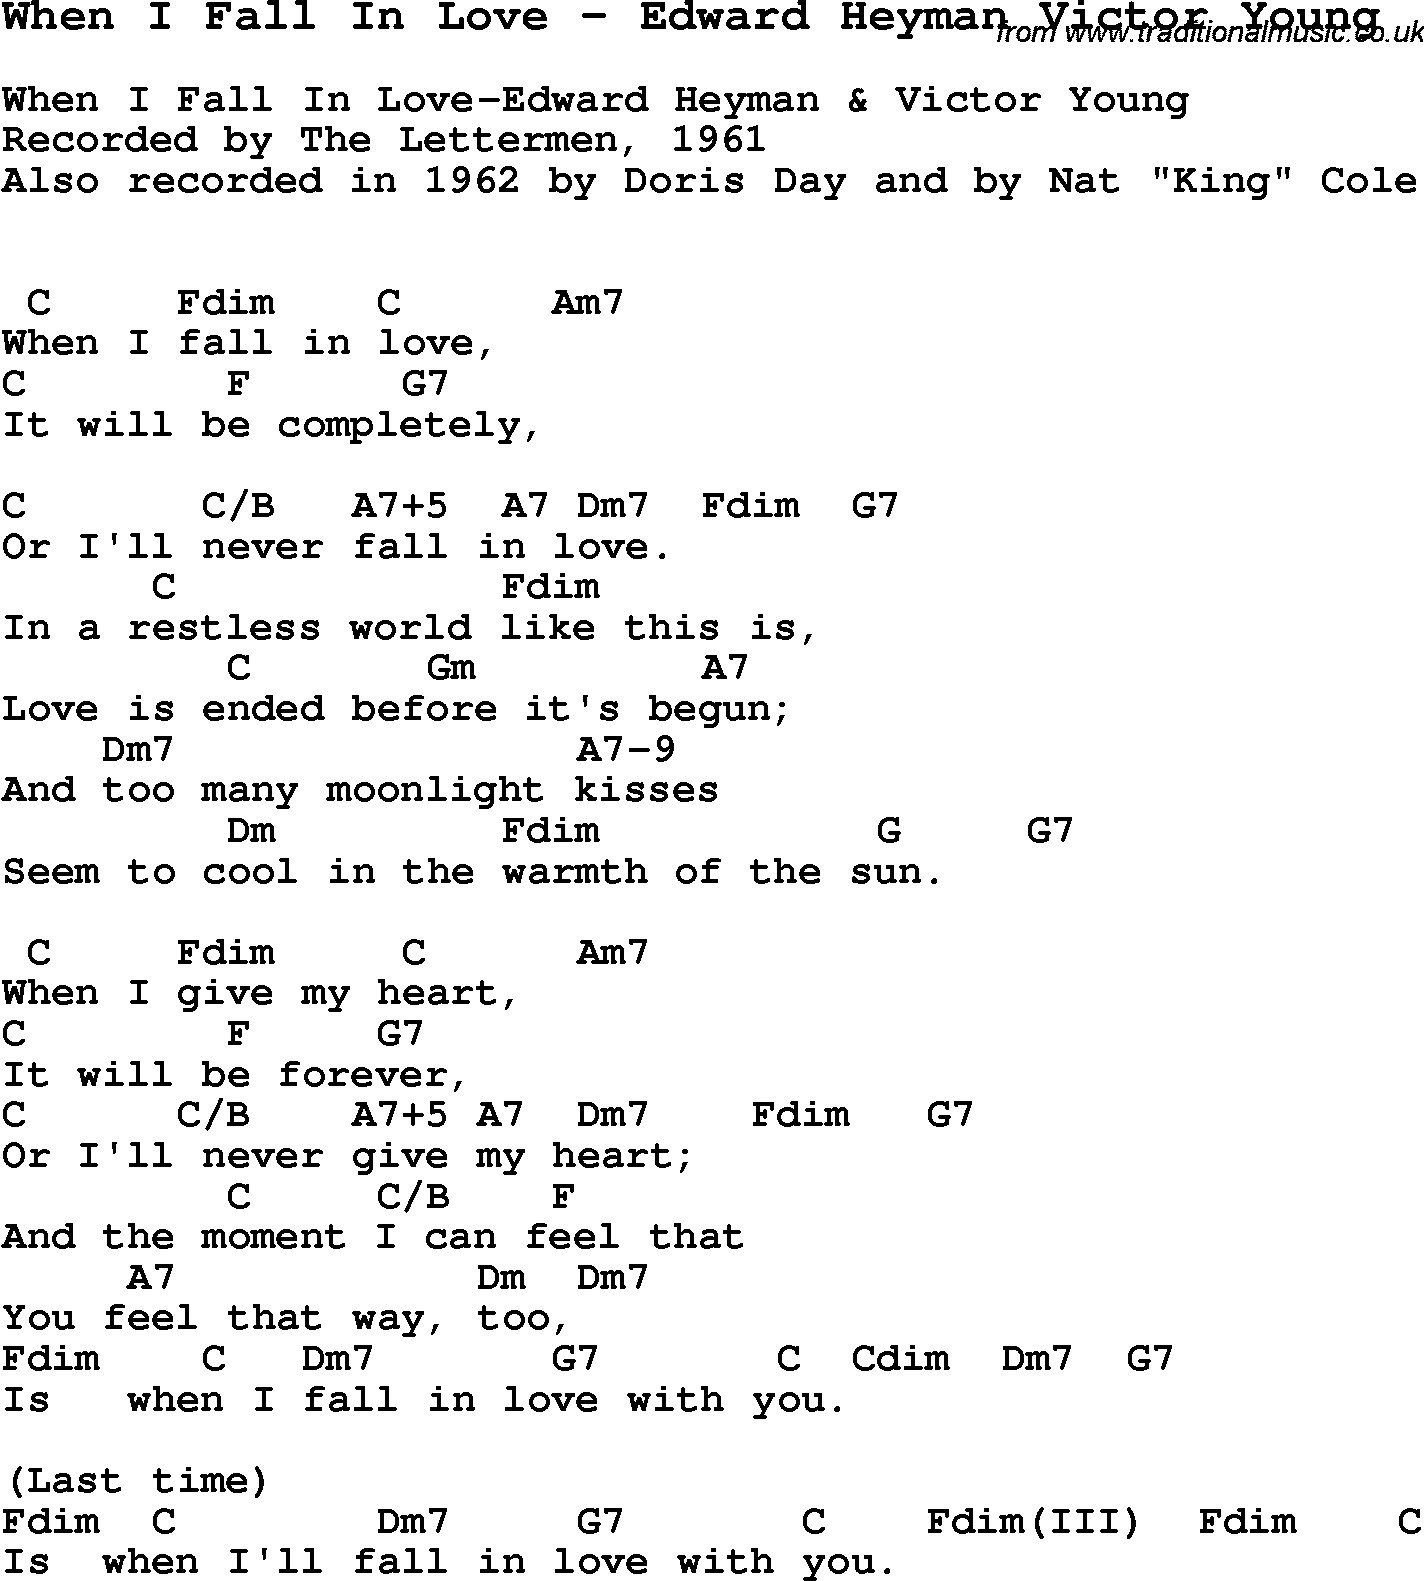 Song when i fall in love by edward heyman victor young with song when i fall in love by edward heyman victor young song lyric for vocal performance plus accompaniment chords for ukulele guitar banjo etc hexwebz Choice Image